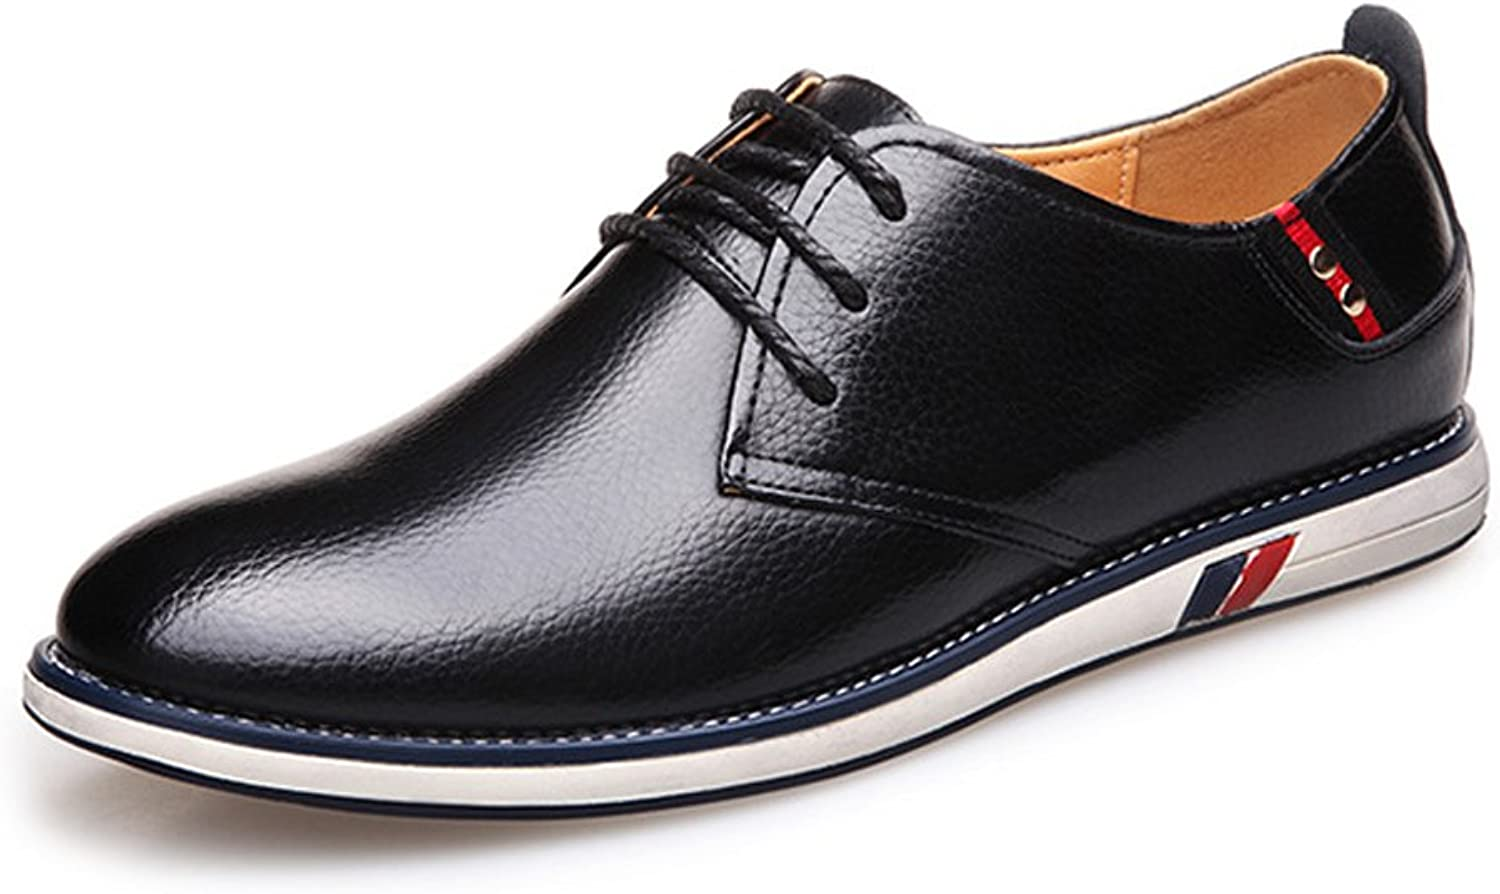 XHD- Classic shoes Classic Simple Men's shoes Genuine Cowhide Leather Upper Lace Up Flat Sole Loafer for Gentlemen